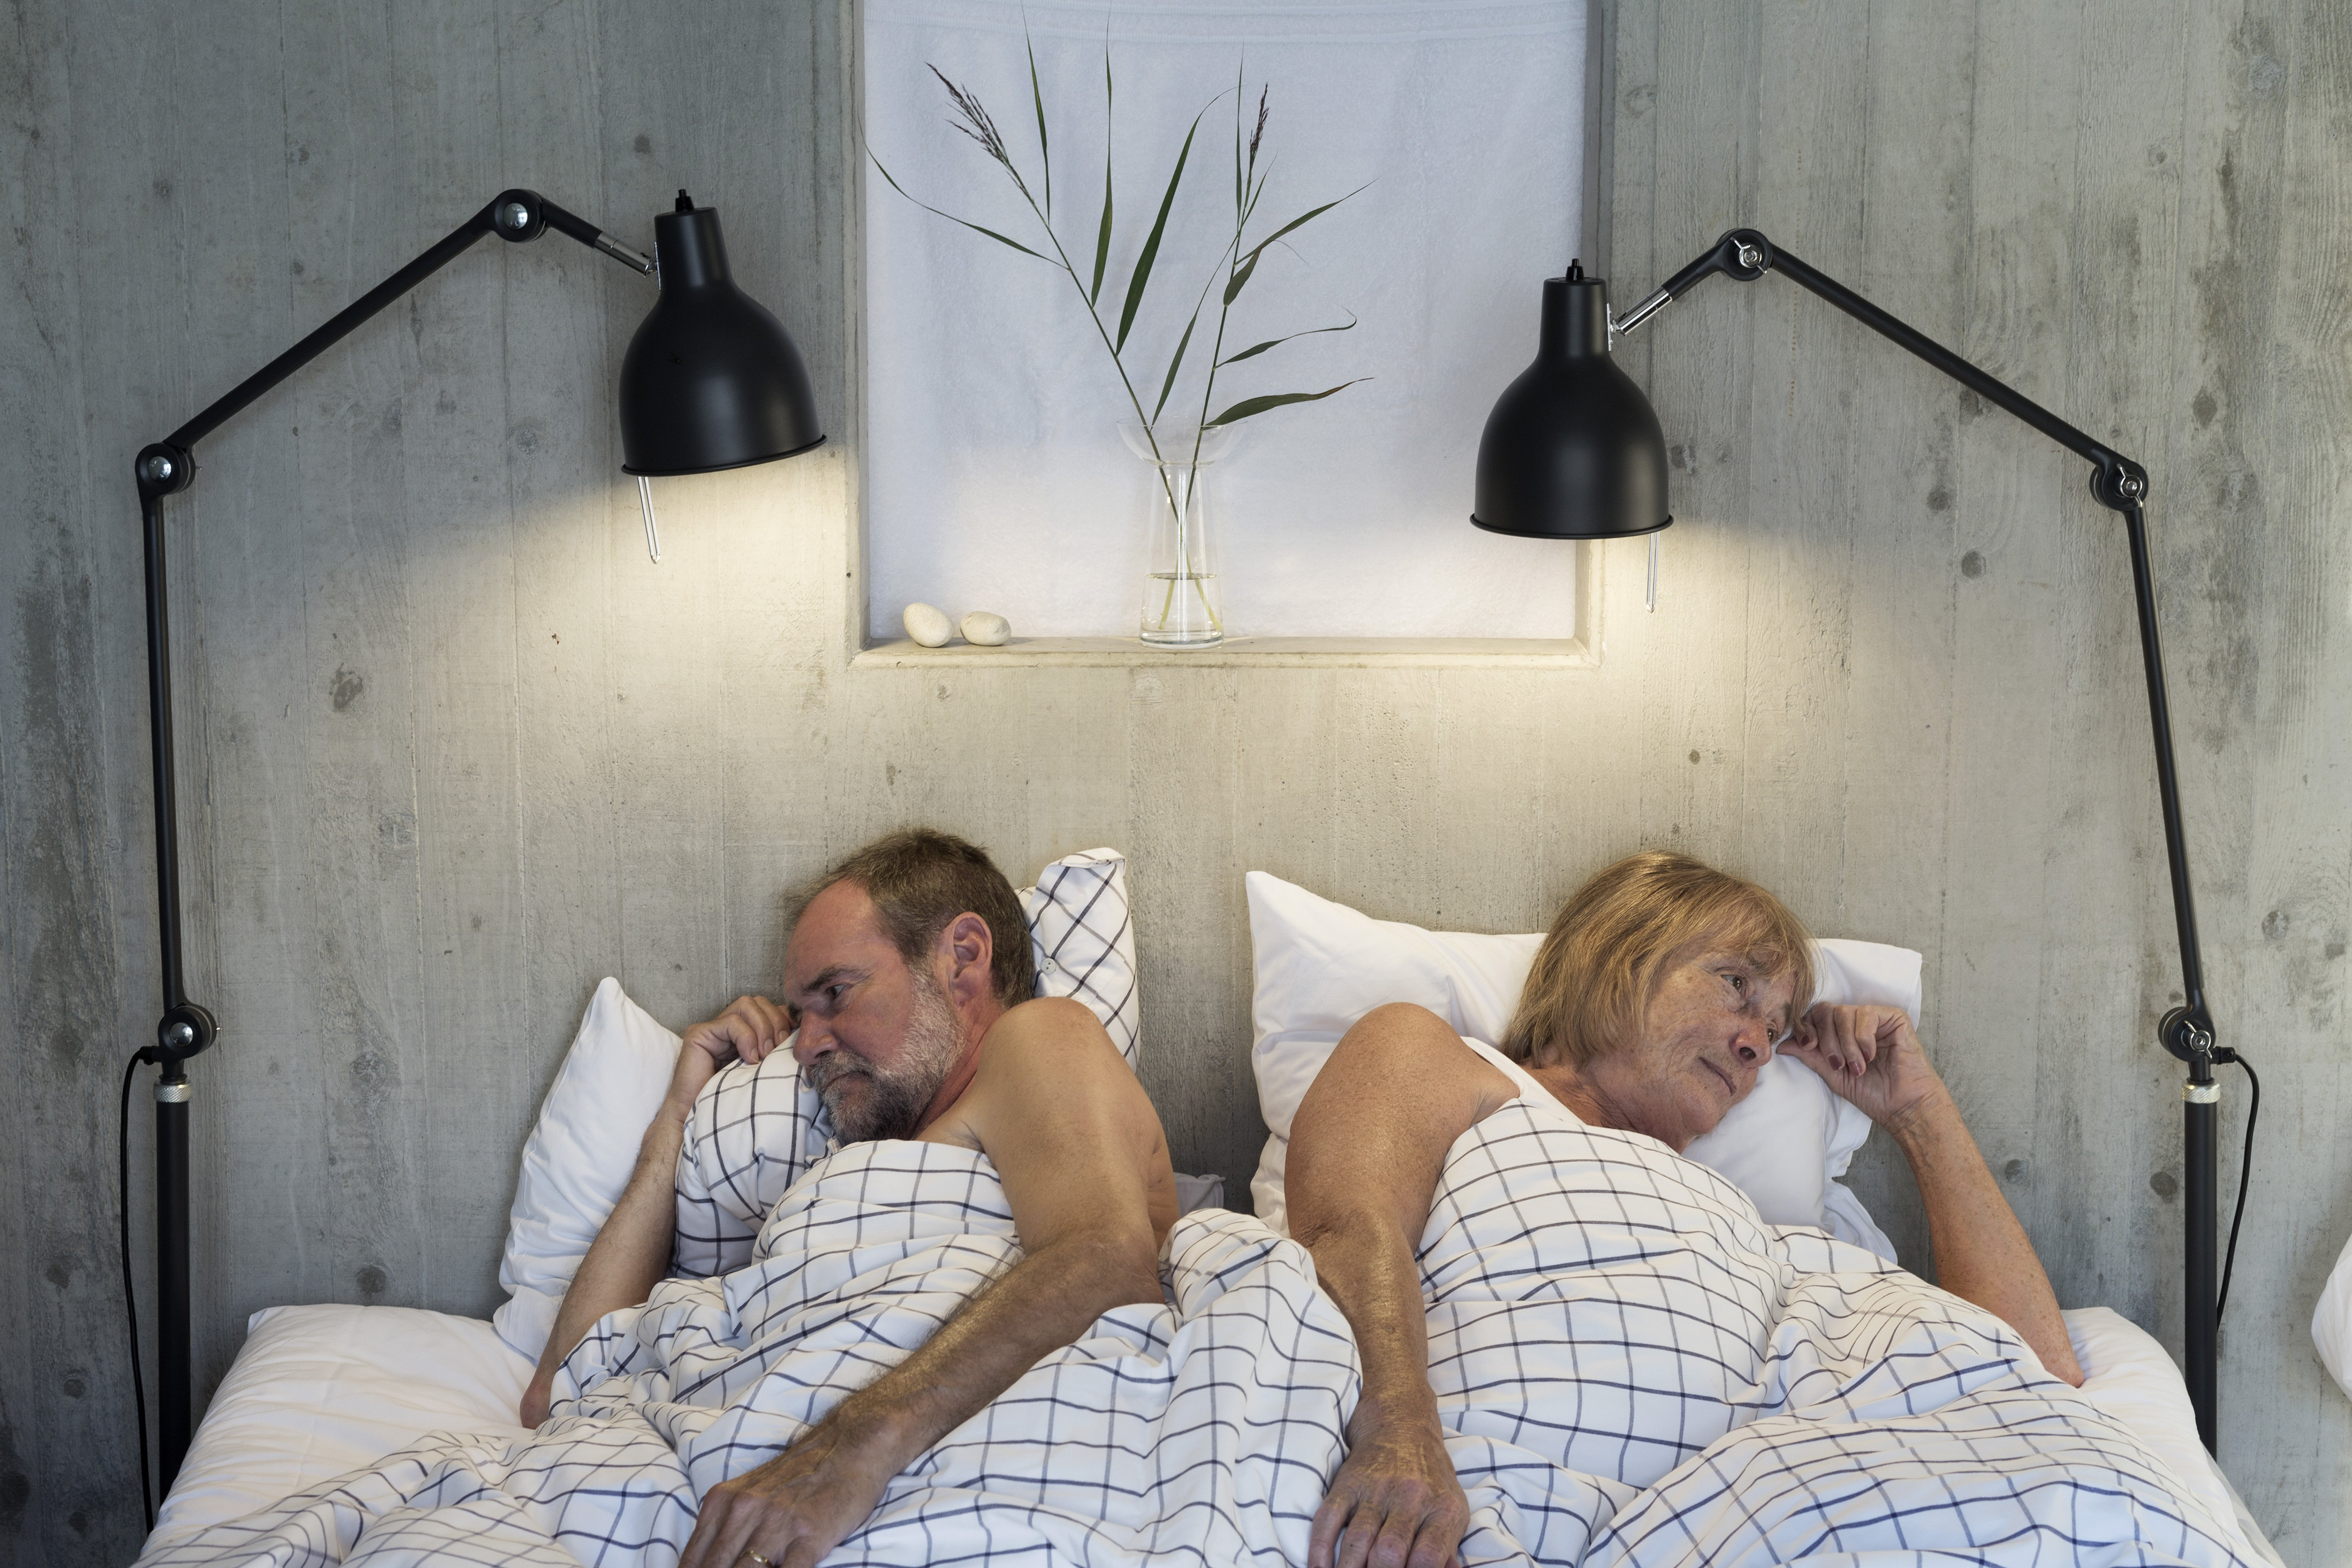 Elderly couple in bed with their backs to each other   Source: Shutterstock